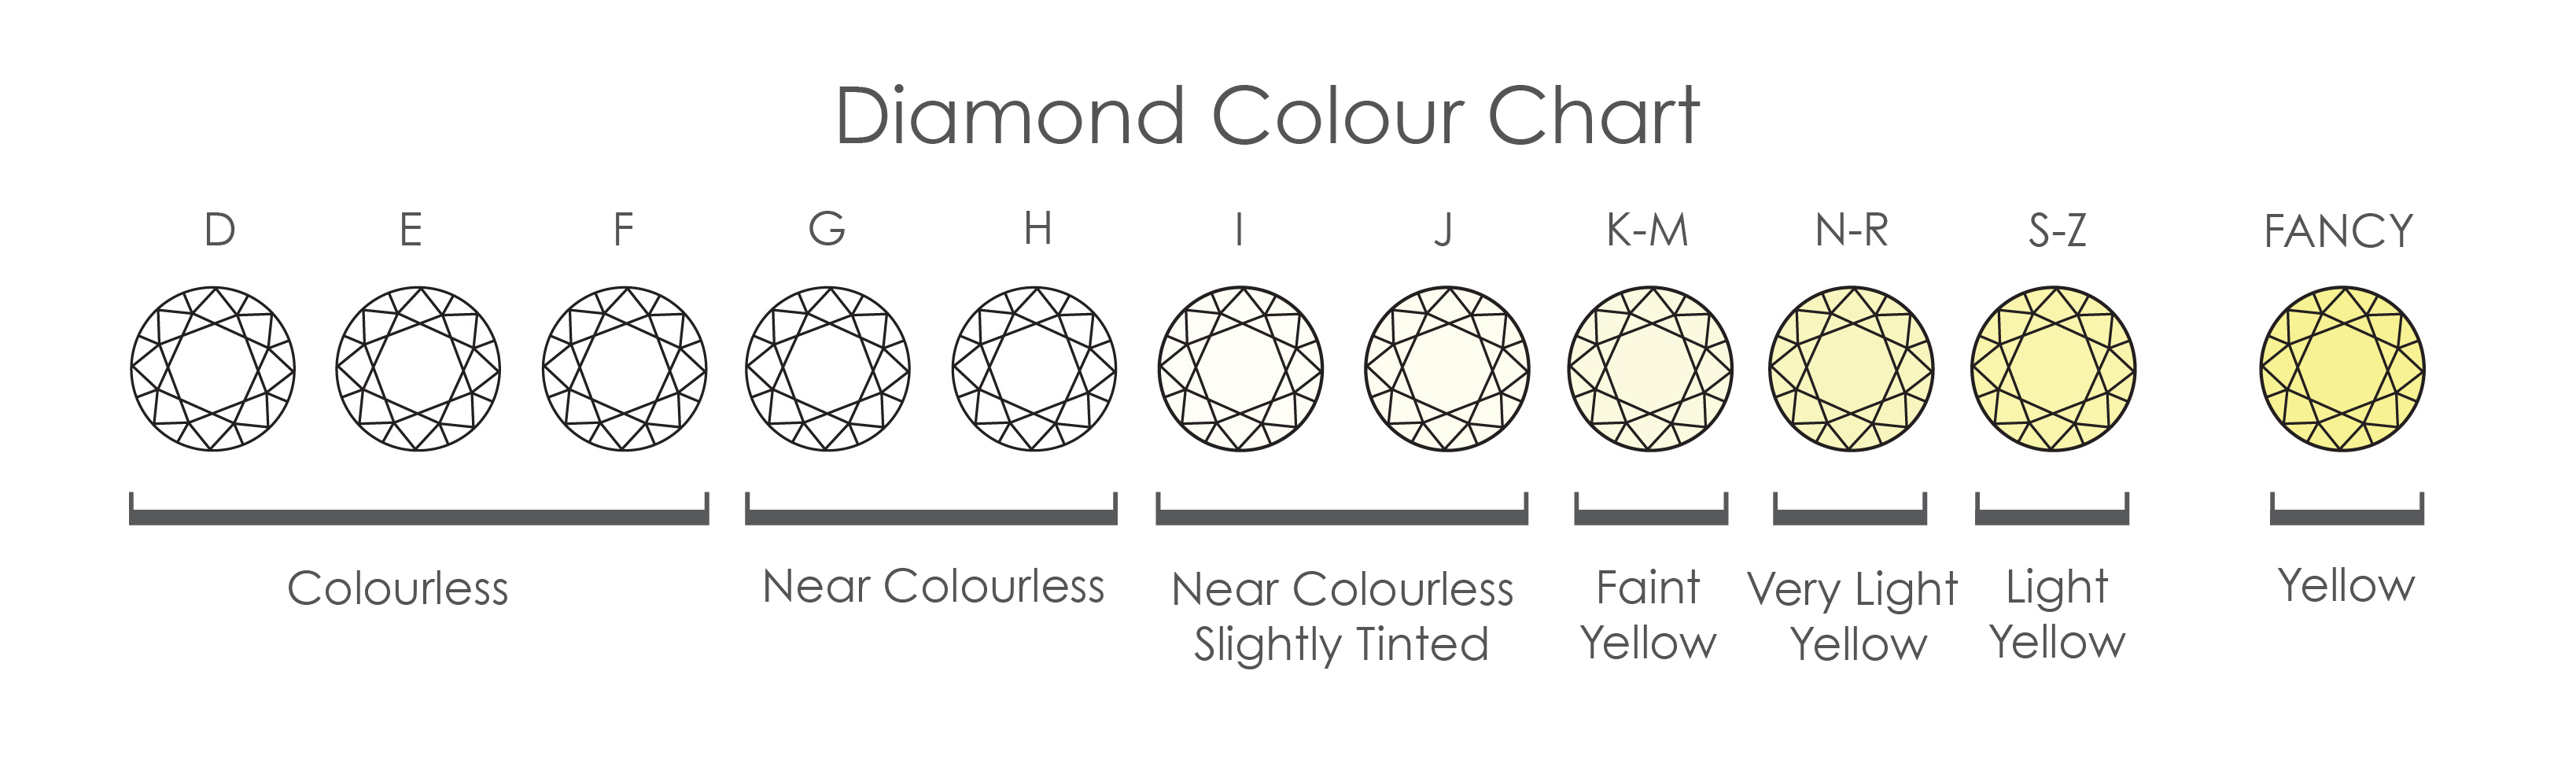 Diamond-Colour-Chart